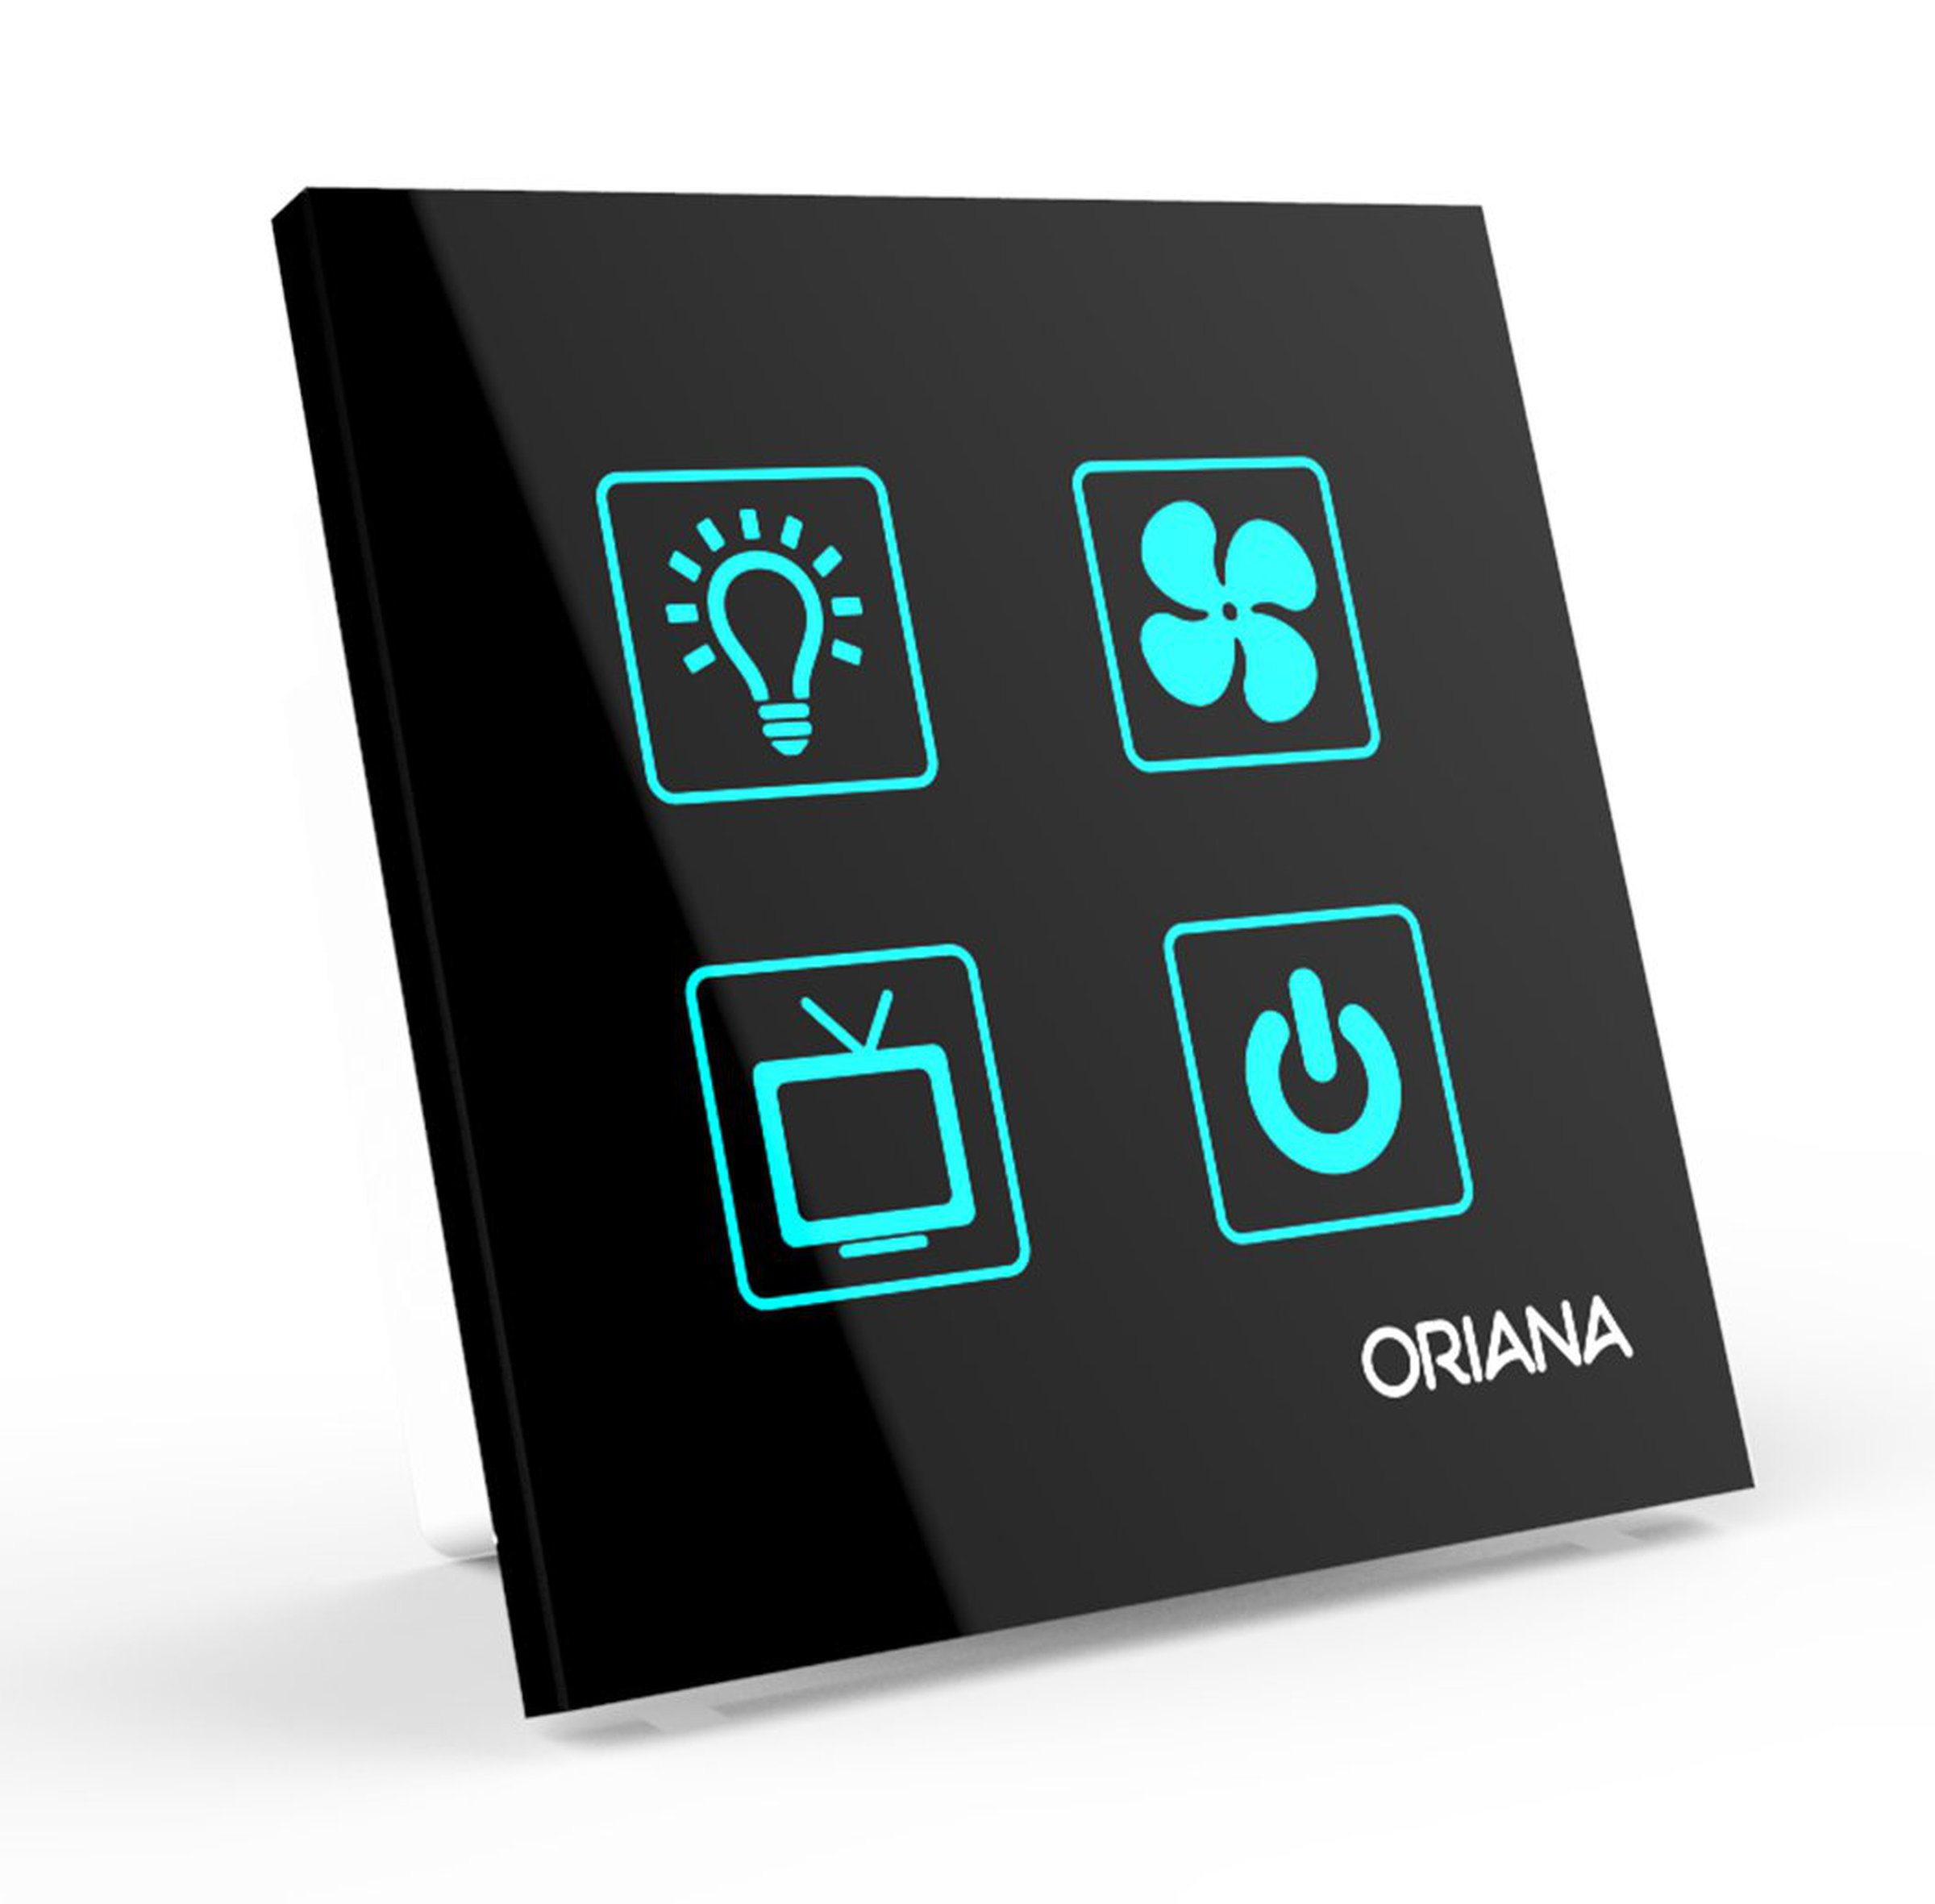 Capacitive Touch Panel Switches Arduino Compatible From Oriana On Tindie Electronic Design Circuits Switch 1